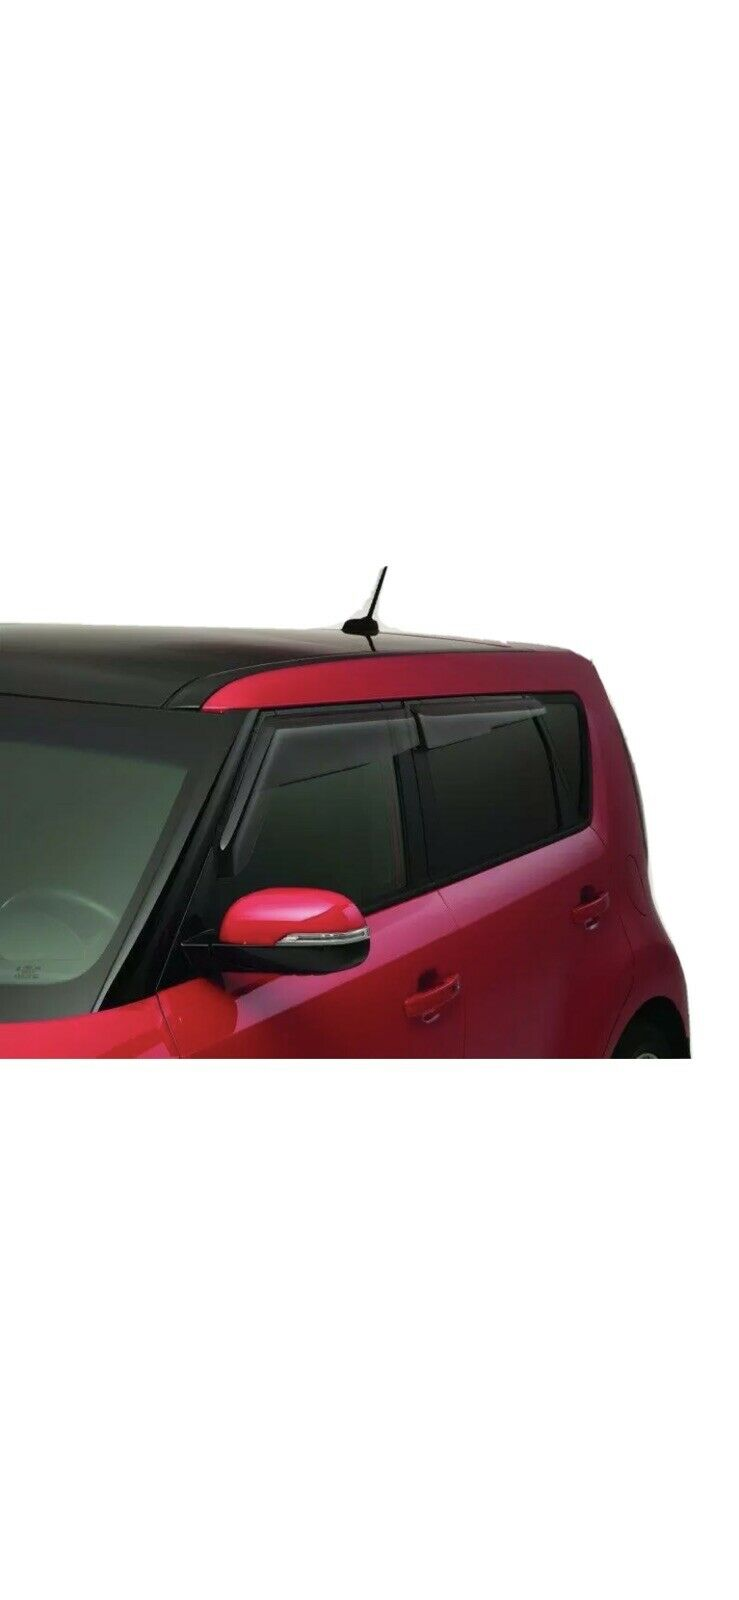 NAGD Compatible with 2014-2019 Kia Soul 2016-2018 Kia Soul EV 4 Door Hatchback Passenger Side Right Front Door Window Glass